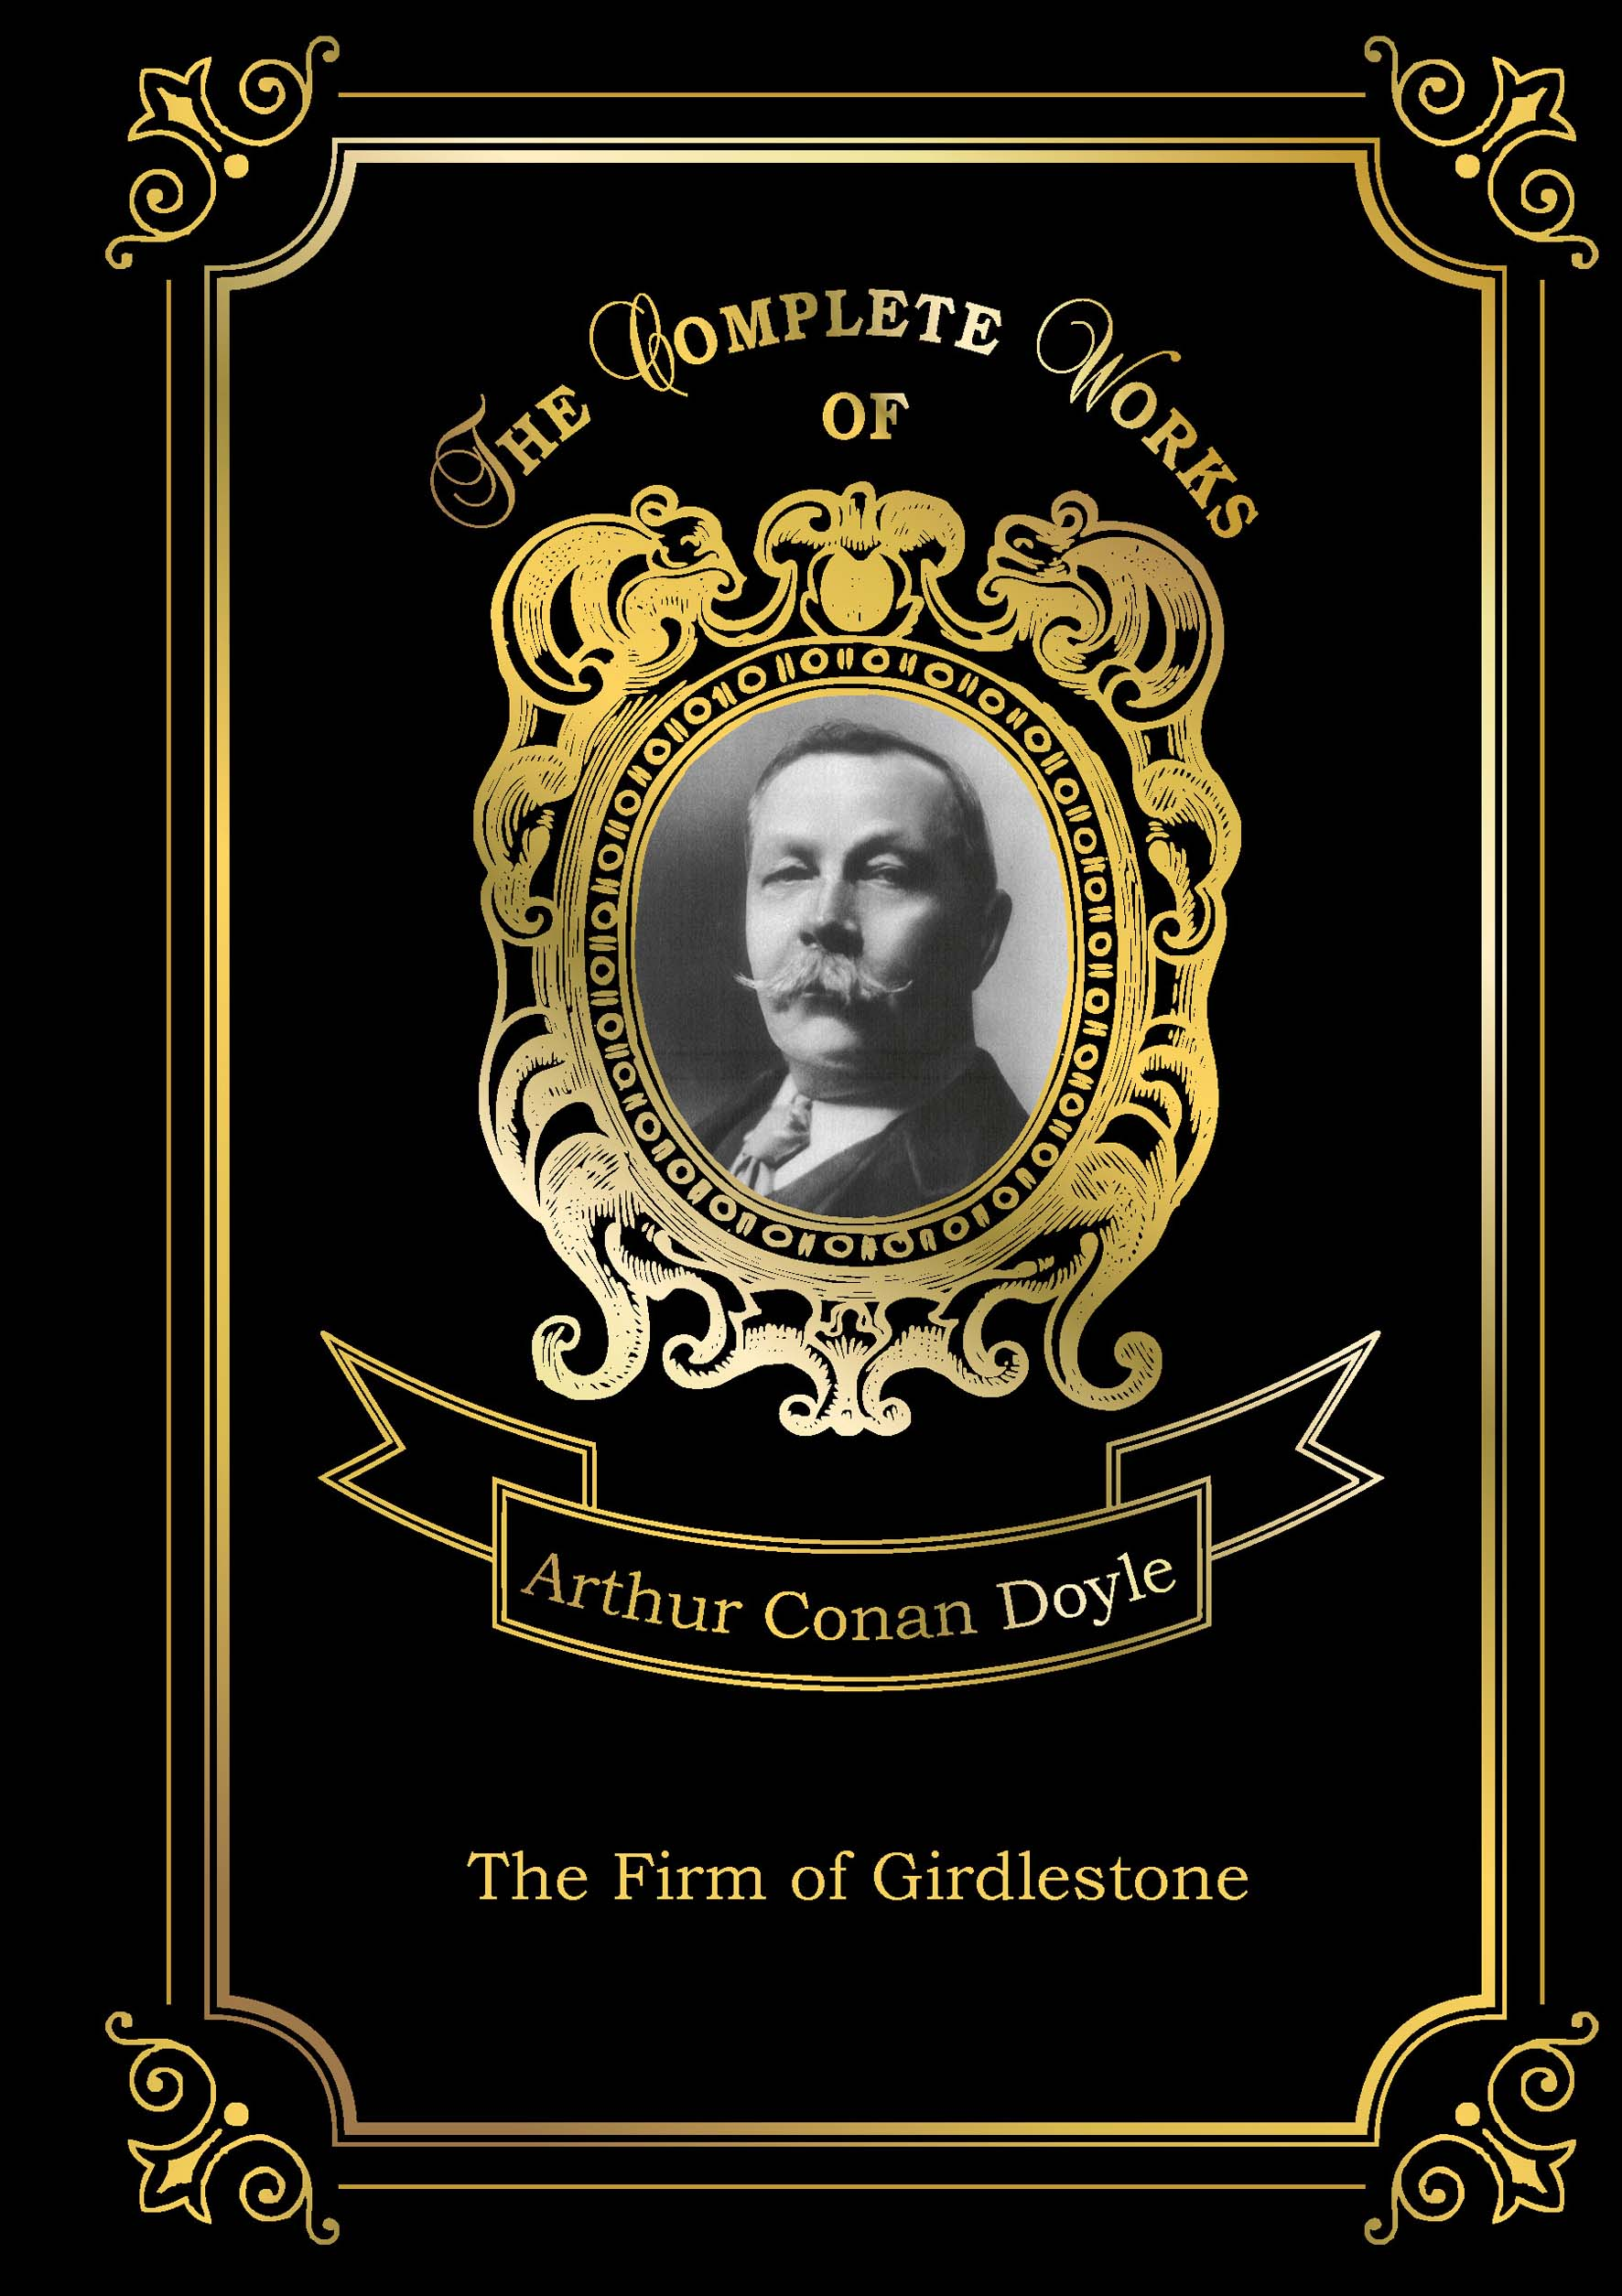 Doyle A.C. The Firm of Girdlestone артур конан дойл the firm of girdlestone